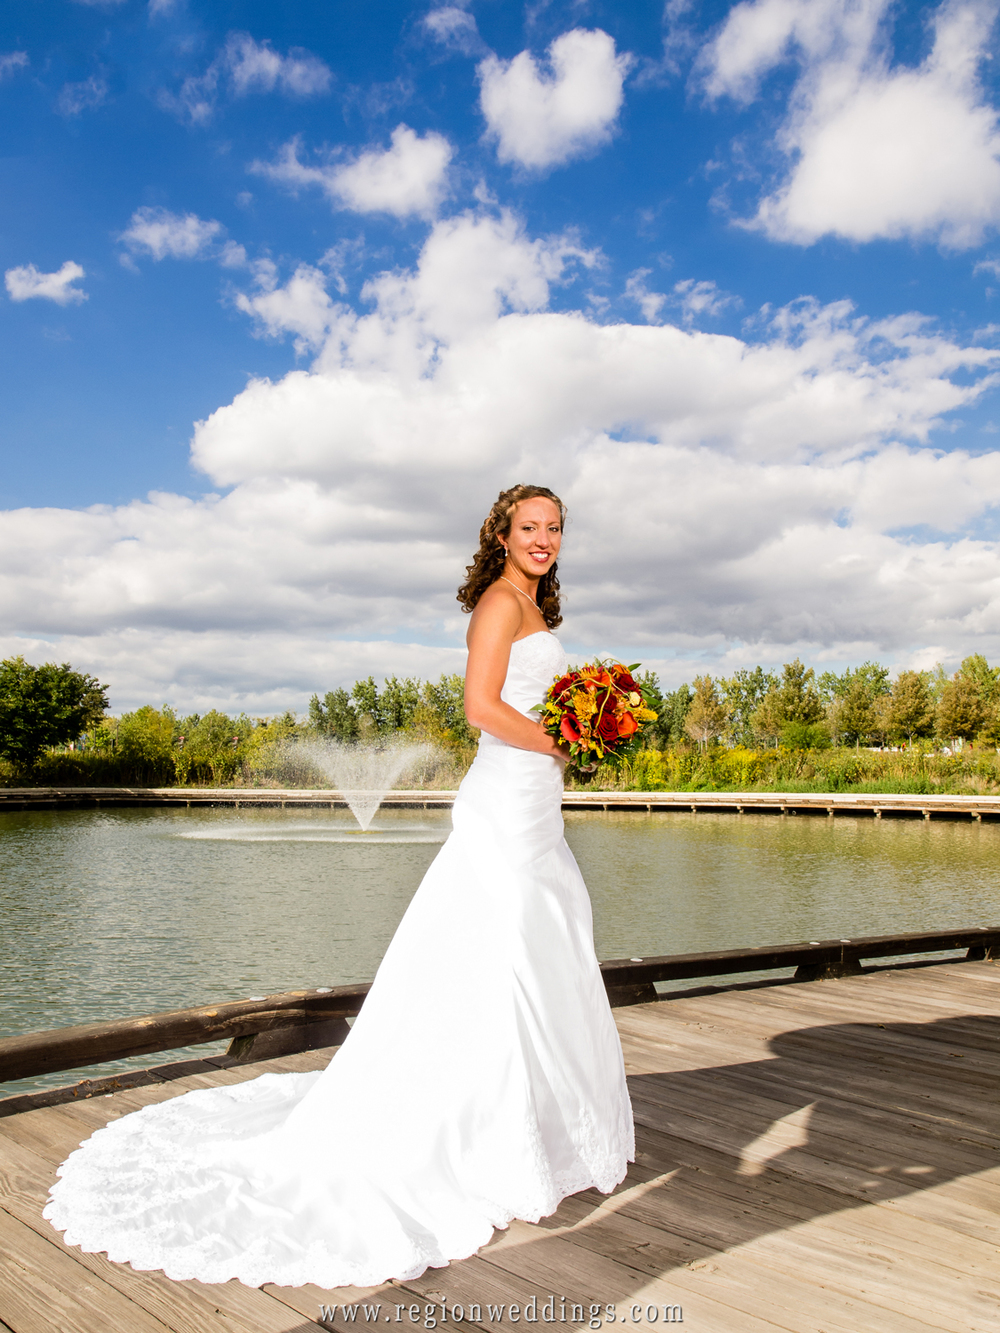 A lovely bride hold her bouquet of flowers in front of the picturesque water fountains at Centennial Park.